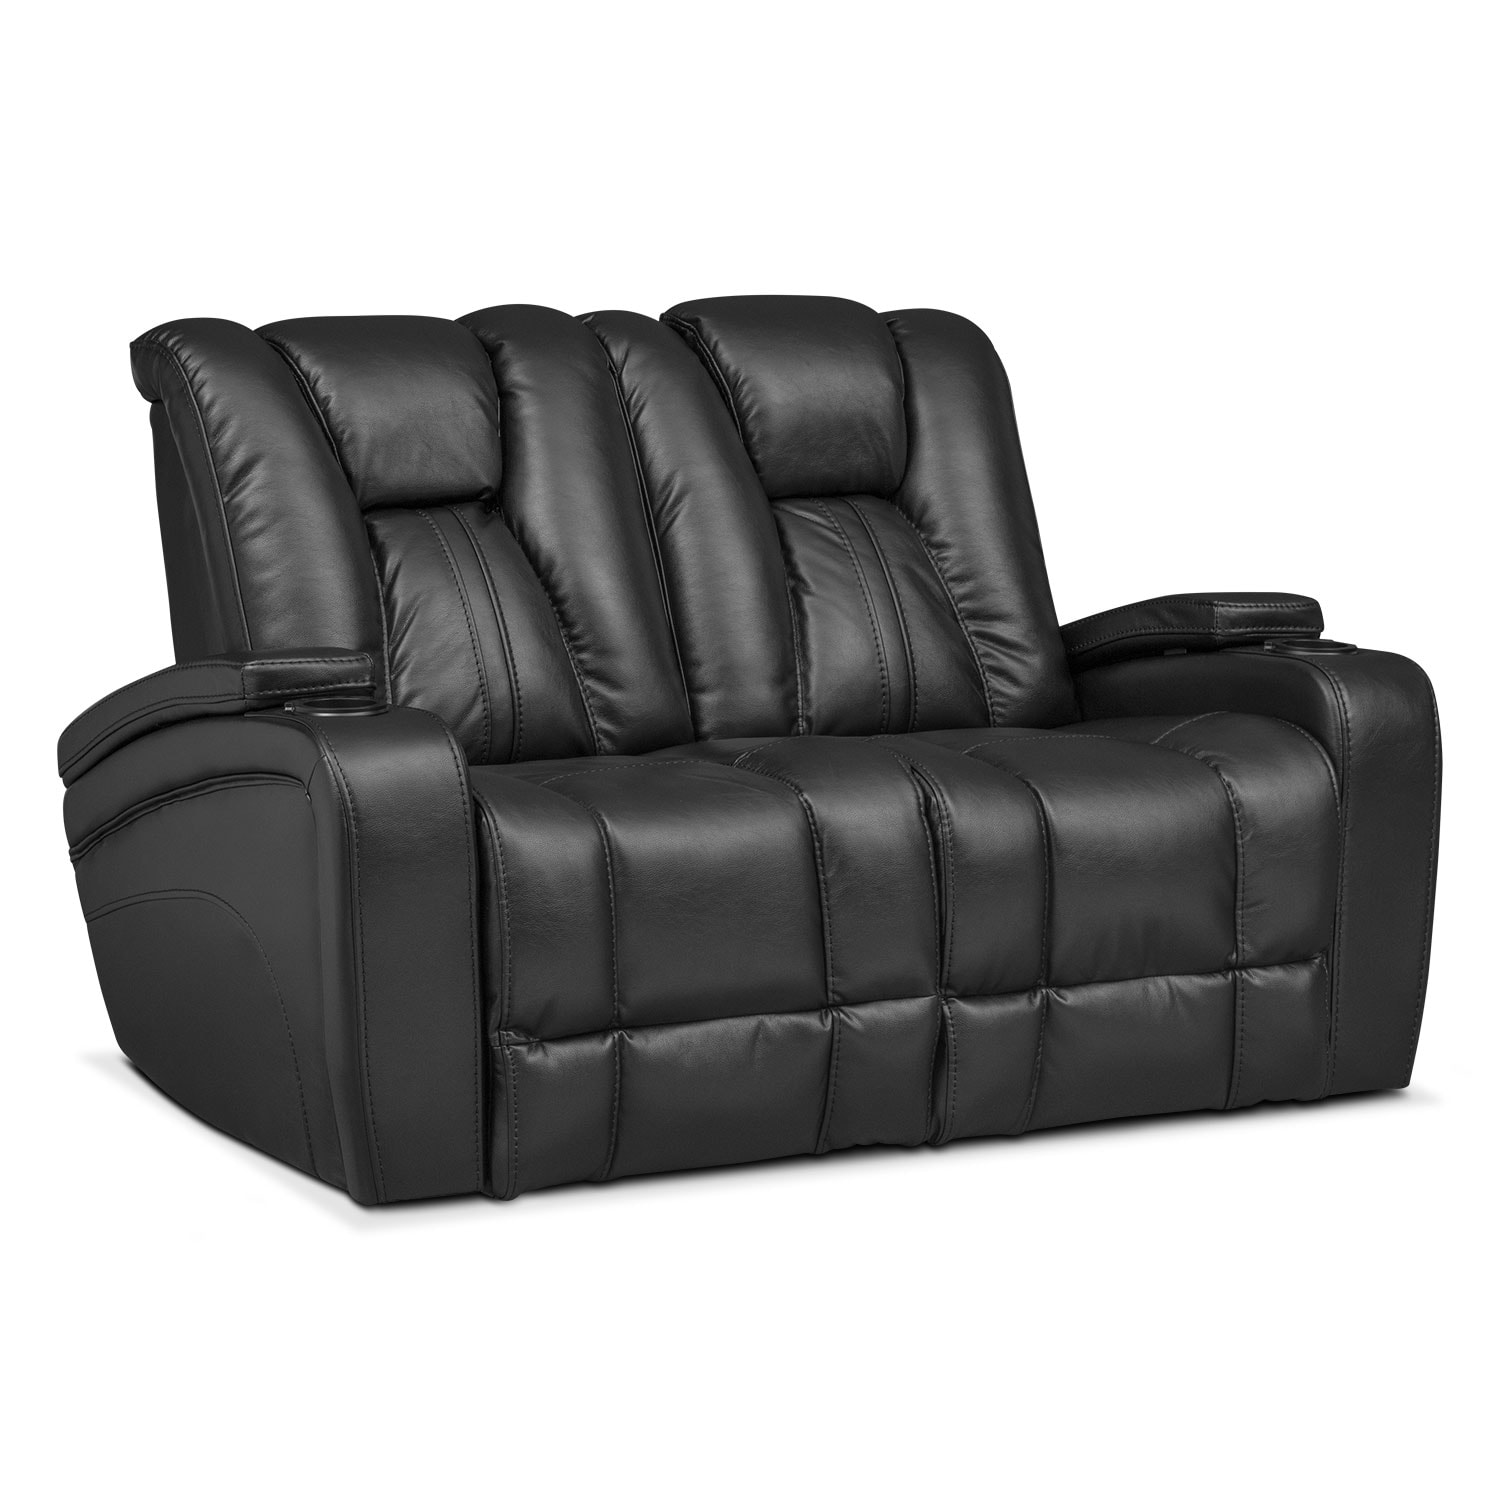 Bettsofa Chur 19 New Electric Reclining Settees